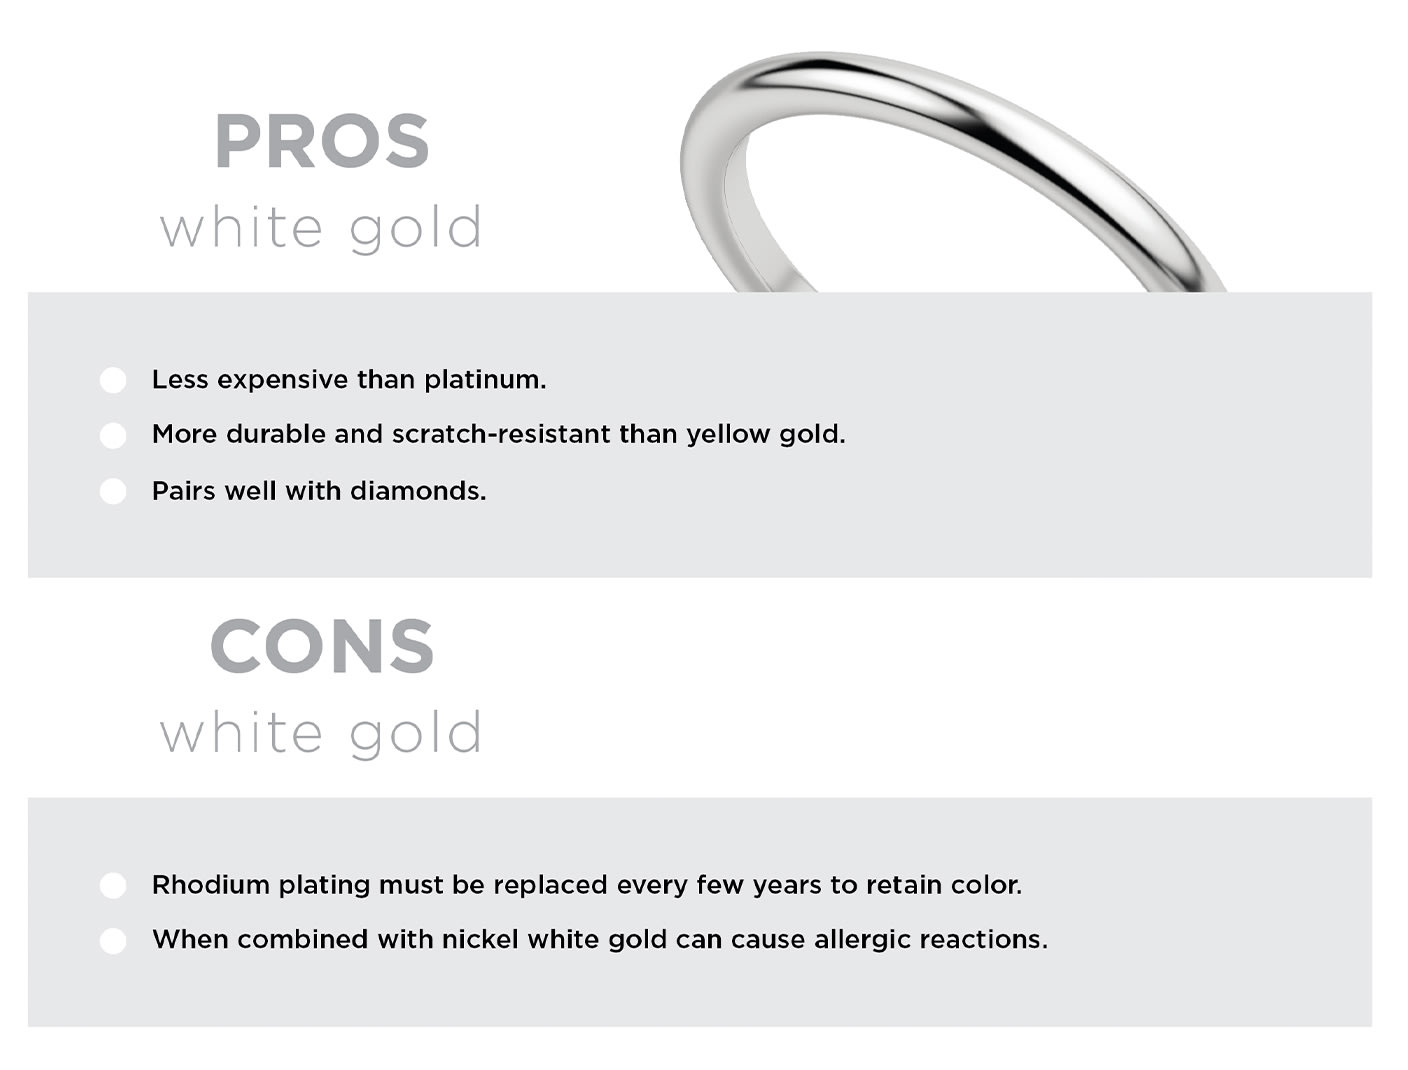 The pros and cons of white gold